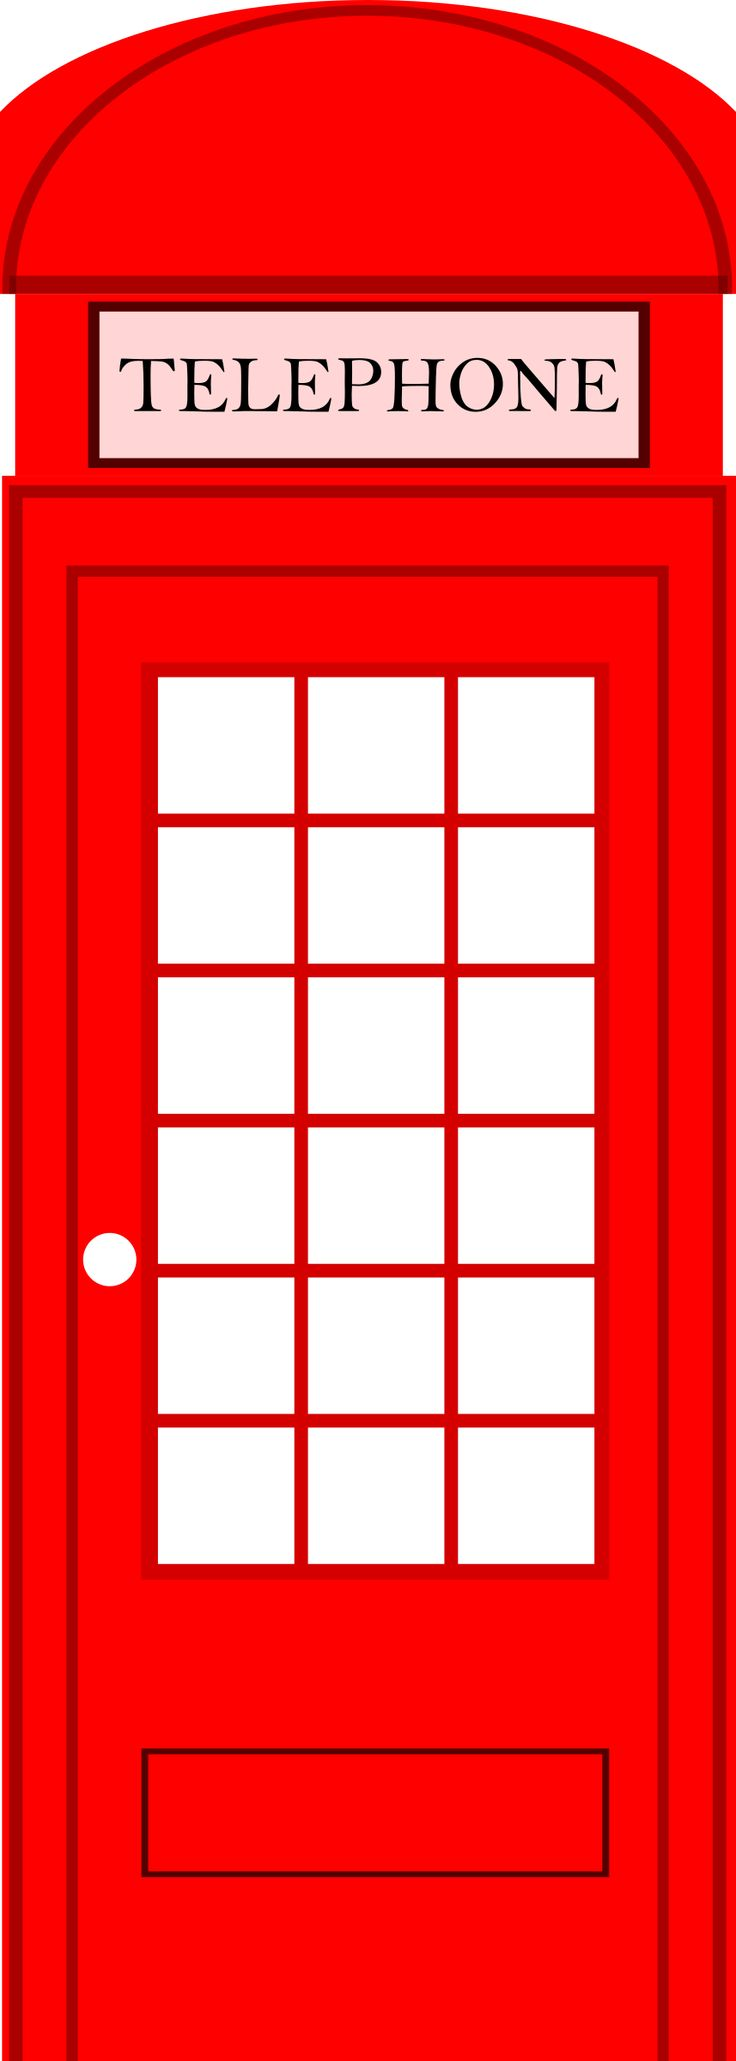 London Phonebooth by @sheikh_tuhin, A London Phonebooth., on @openclipart